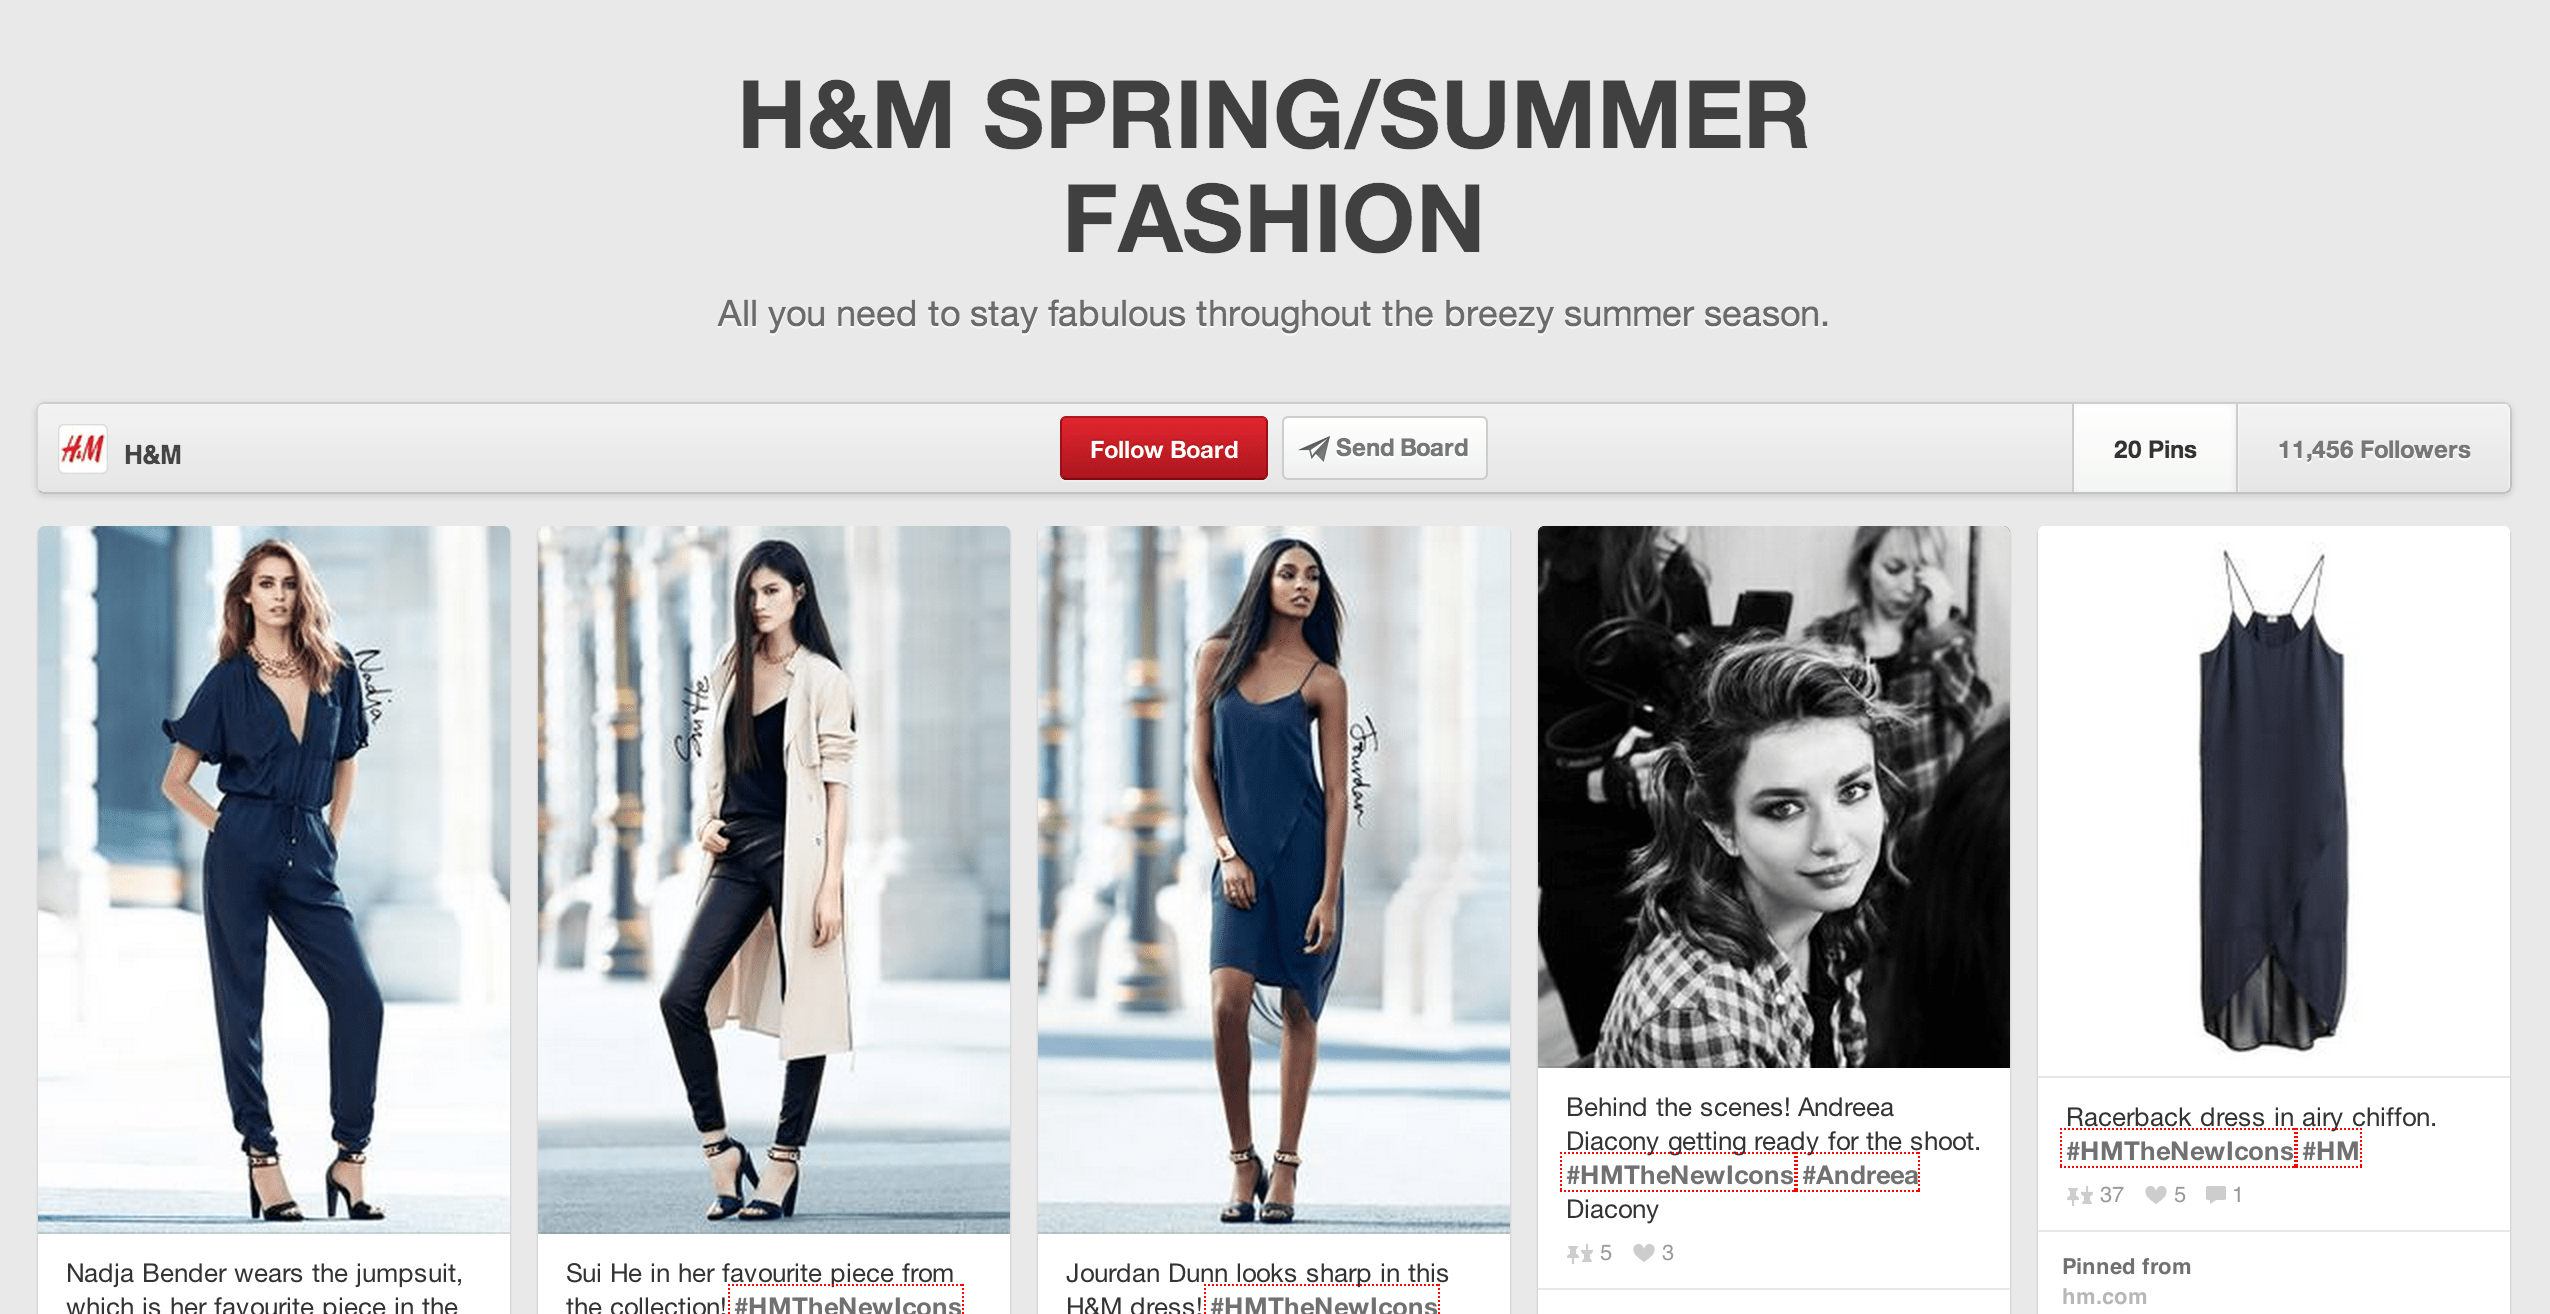 h&m marketing on pinterest